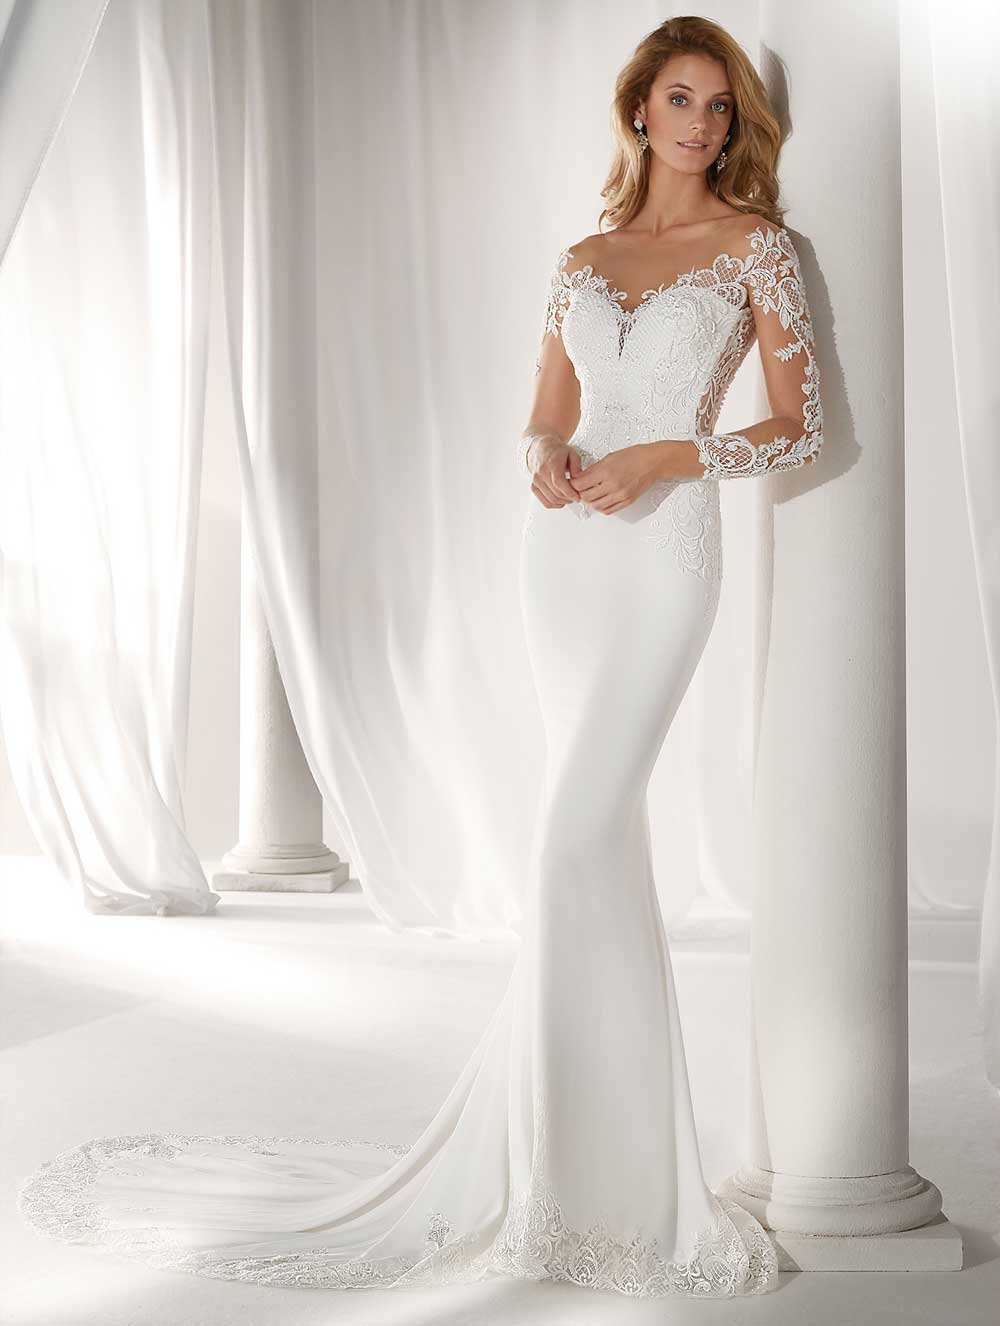 Nicole brides wedding dress 2019